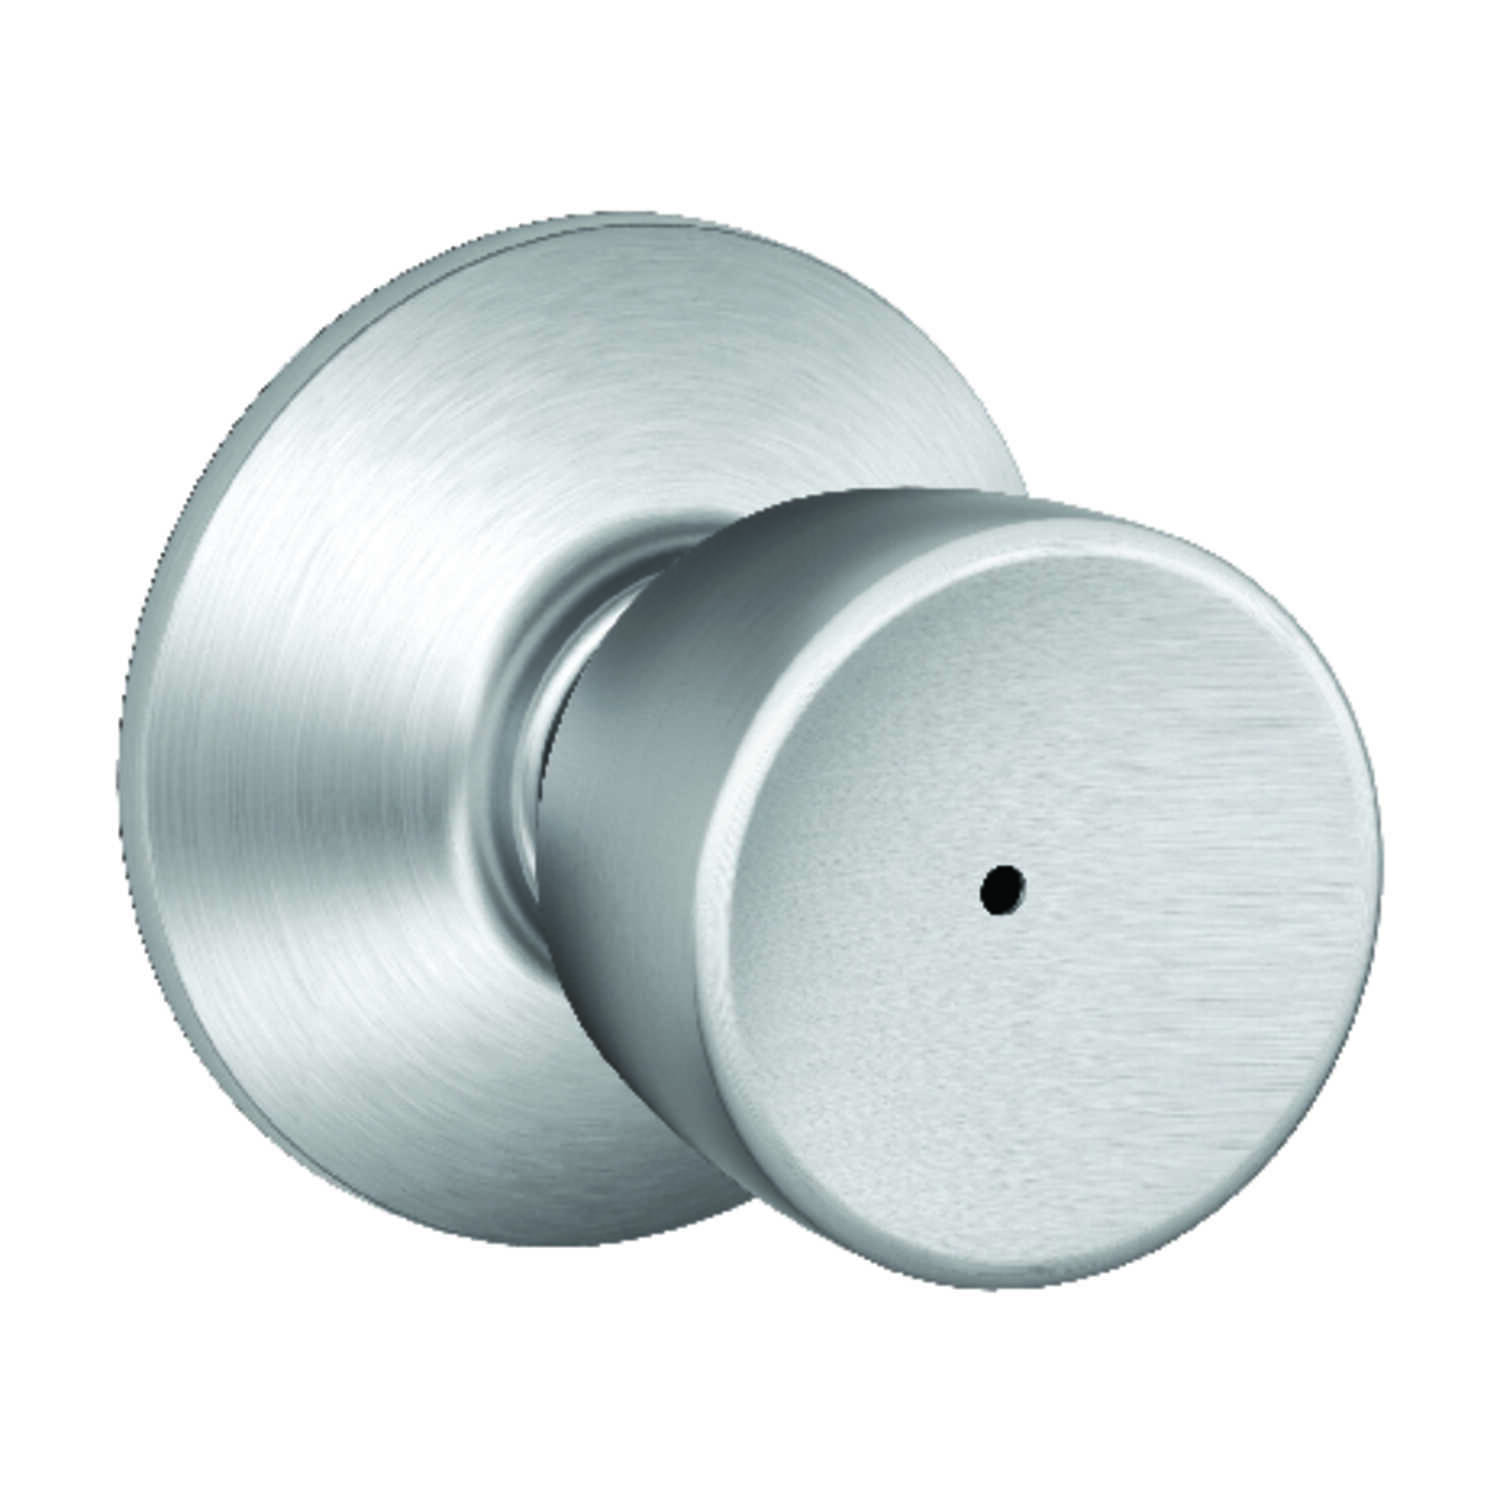 Schlage  Bell  Satin Chrome  Steel  Privacy Lock  ANSI Grade 2  1-3/4 in.